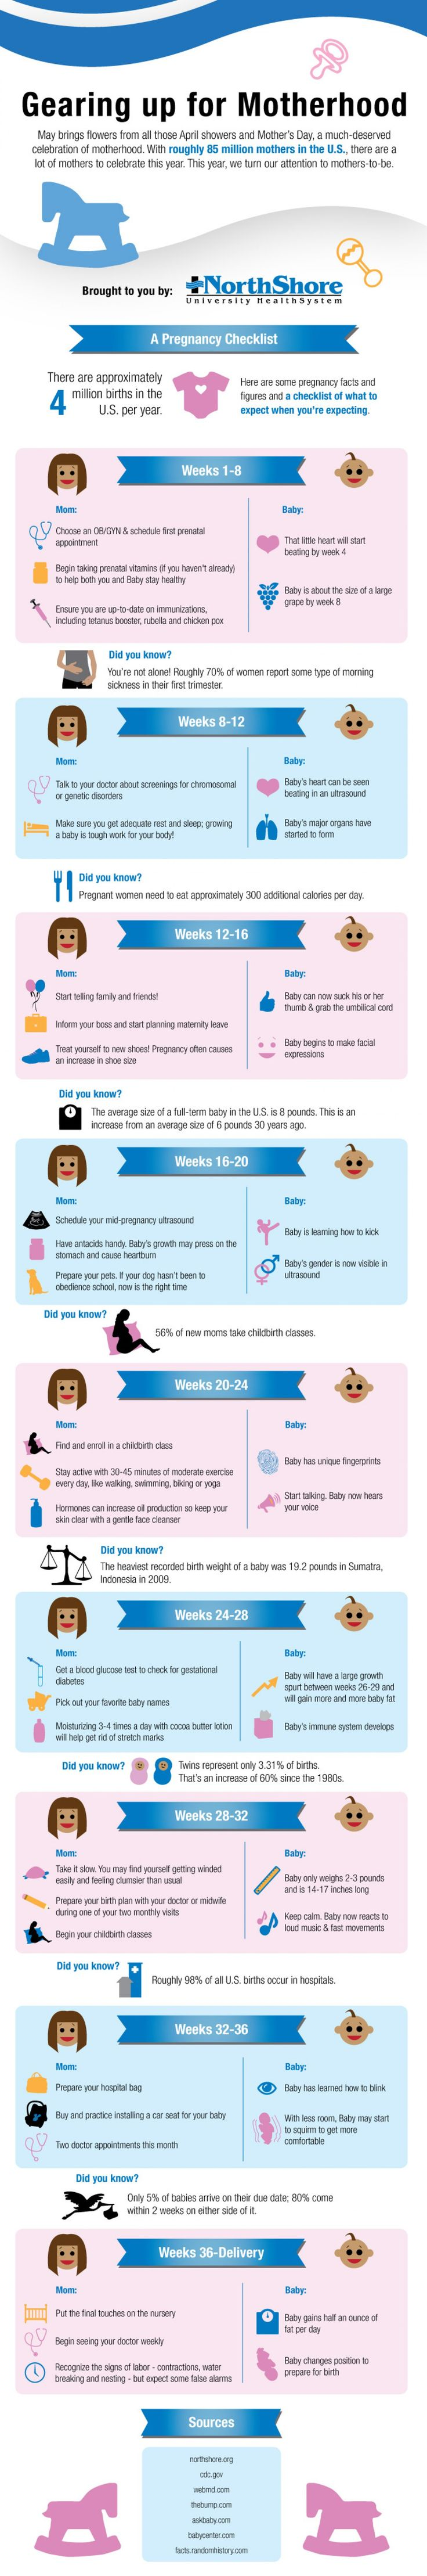 Gearing up for Motherhood: Pregnancy Checklist Infographic